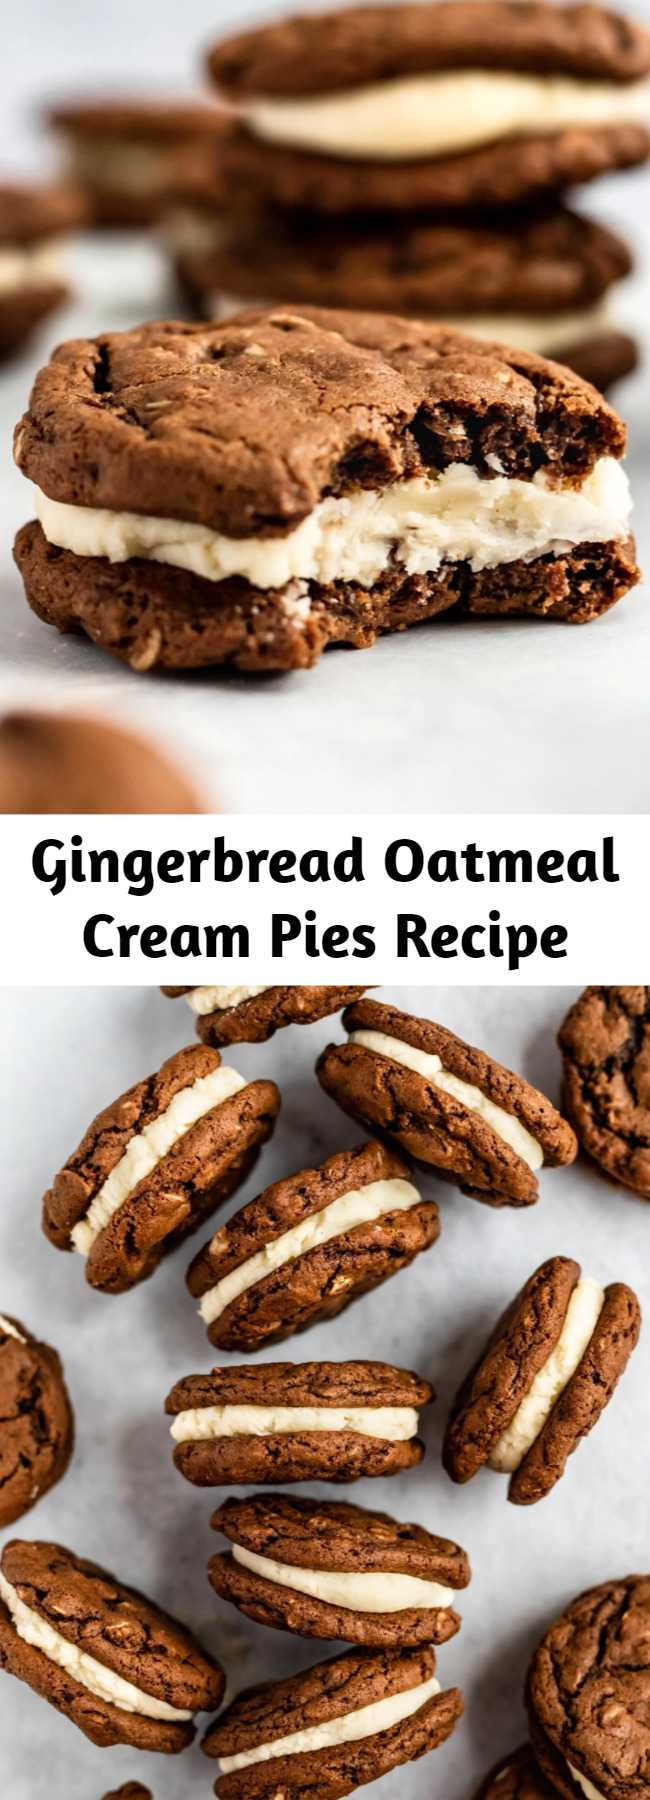 Gingerbread Oatmeal Cream Pies Recipe - Amazing oatmeal cream pies with a gingerbread twist! These perfectly spiced gingerbread oatmeal cookies are sandwiched together with a delicious thick cream filling for the ultimate holiday cookie sandwich. #oatmealcookies #cookies #cookierecipe #baking